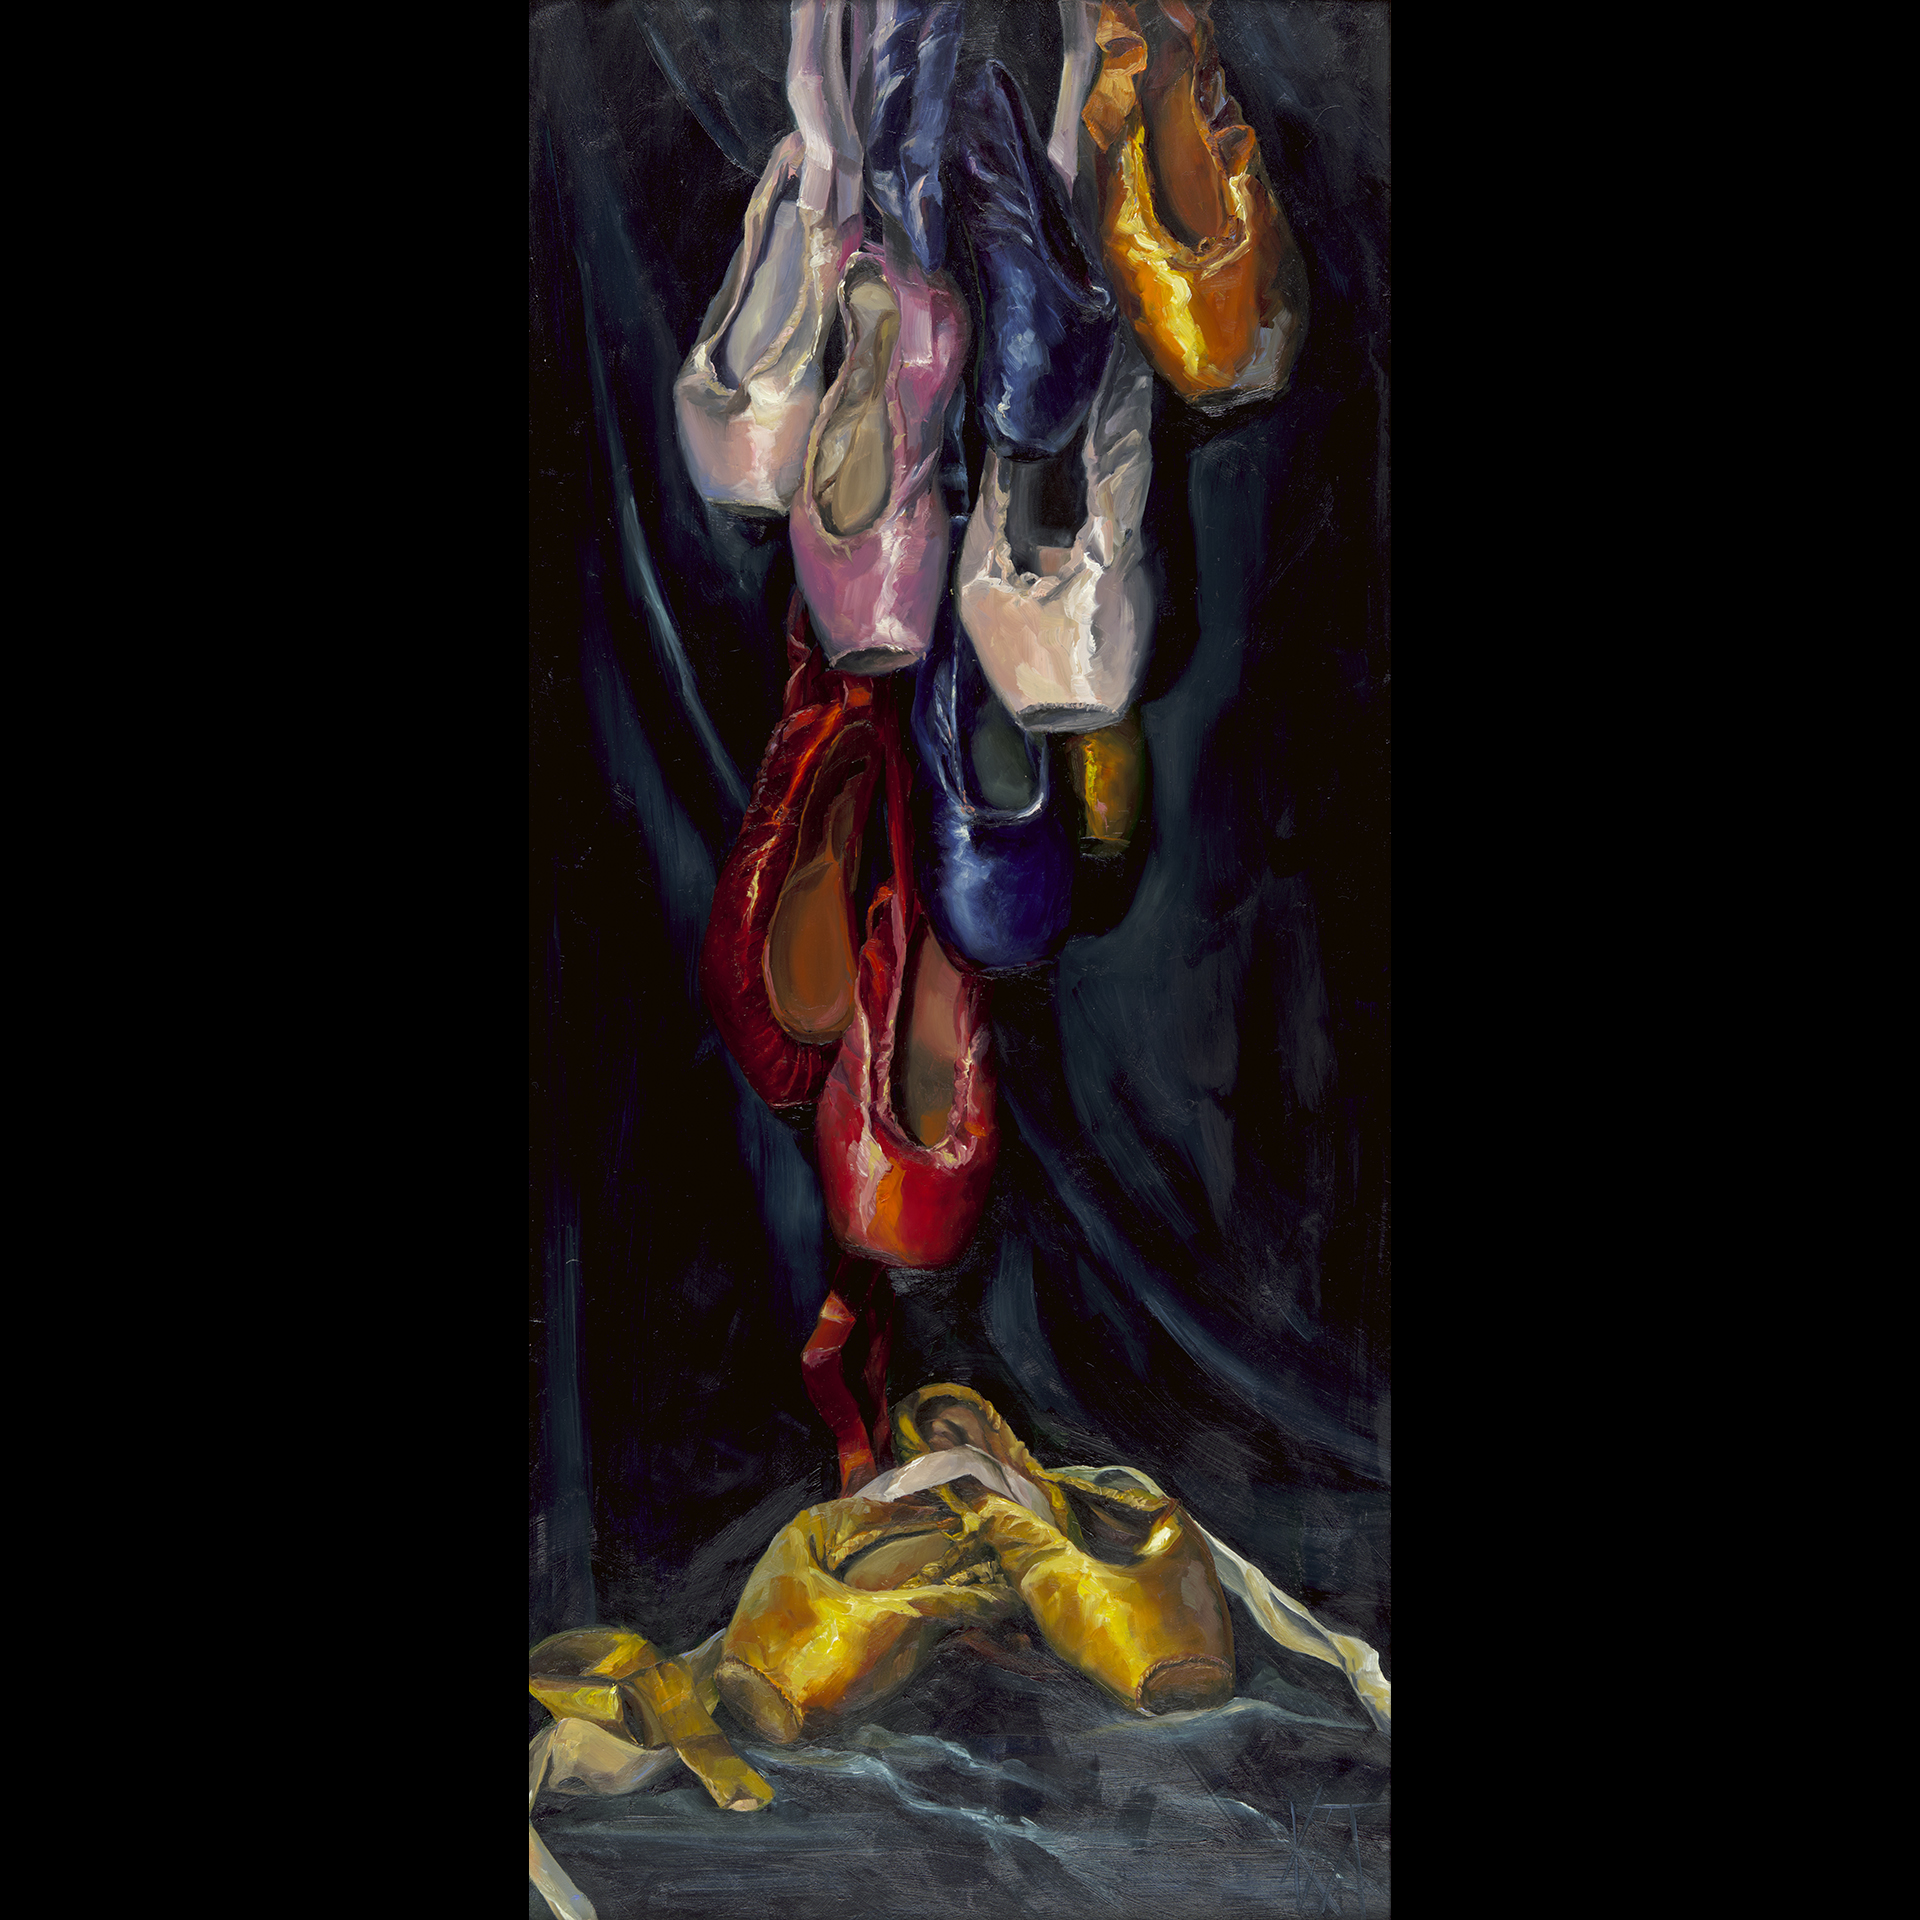 oil painting, ballet shoes, dance, still life, theater, colorful, classic, realism